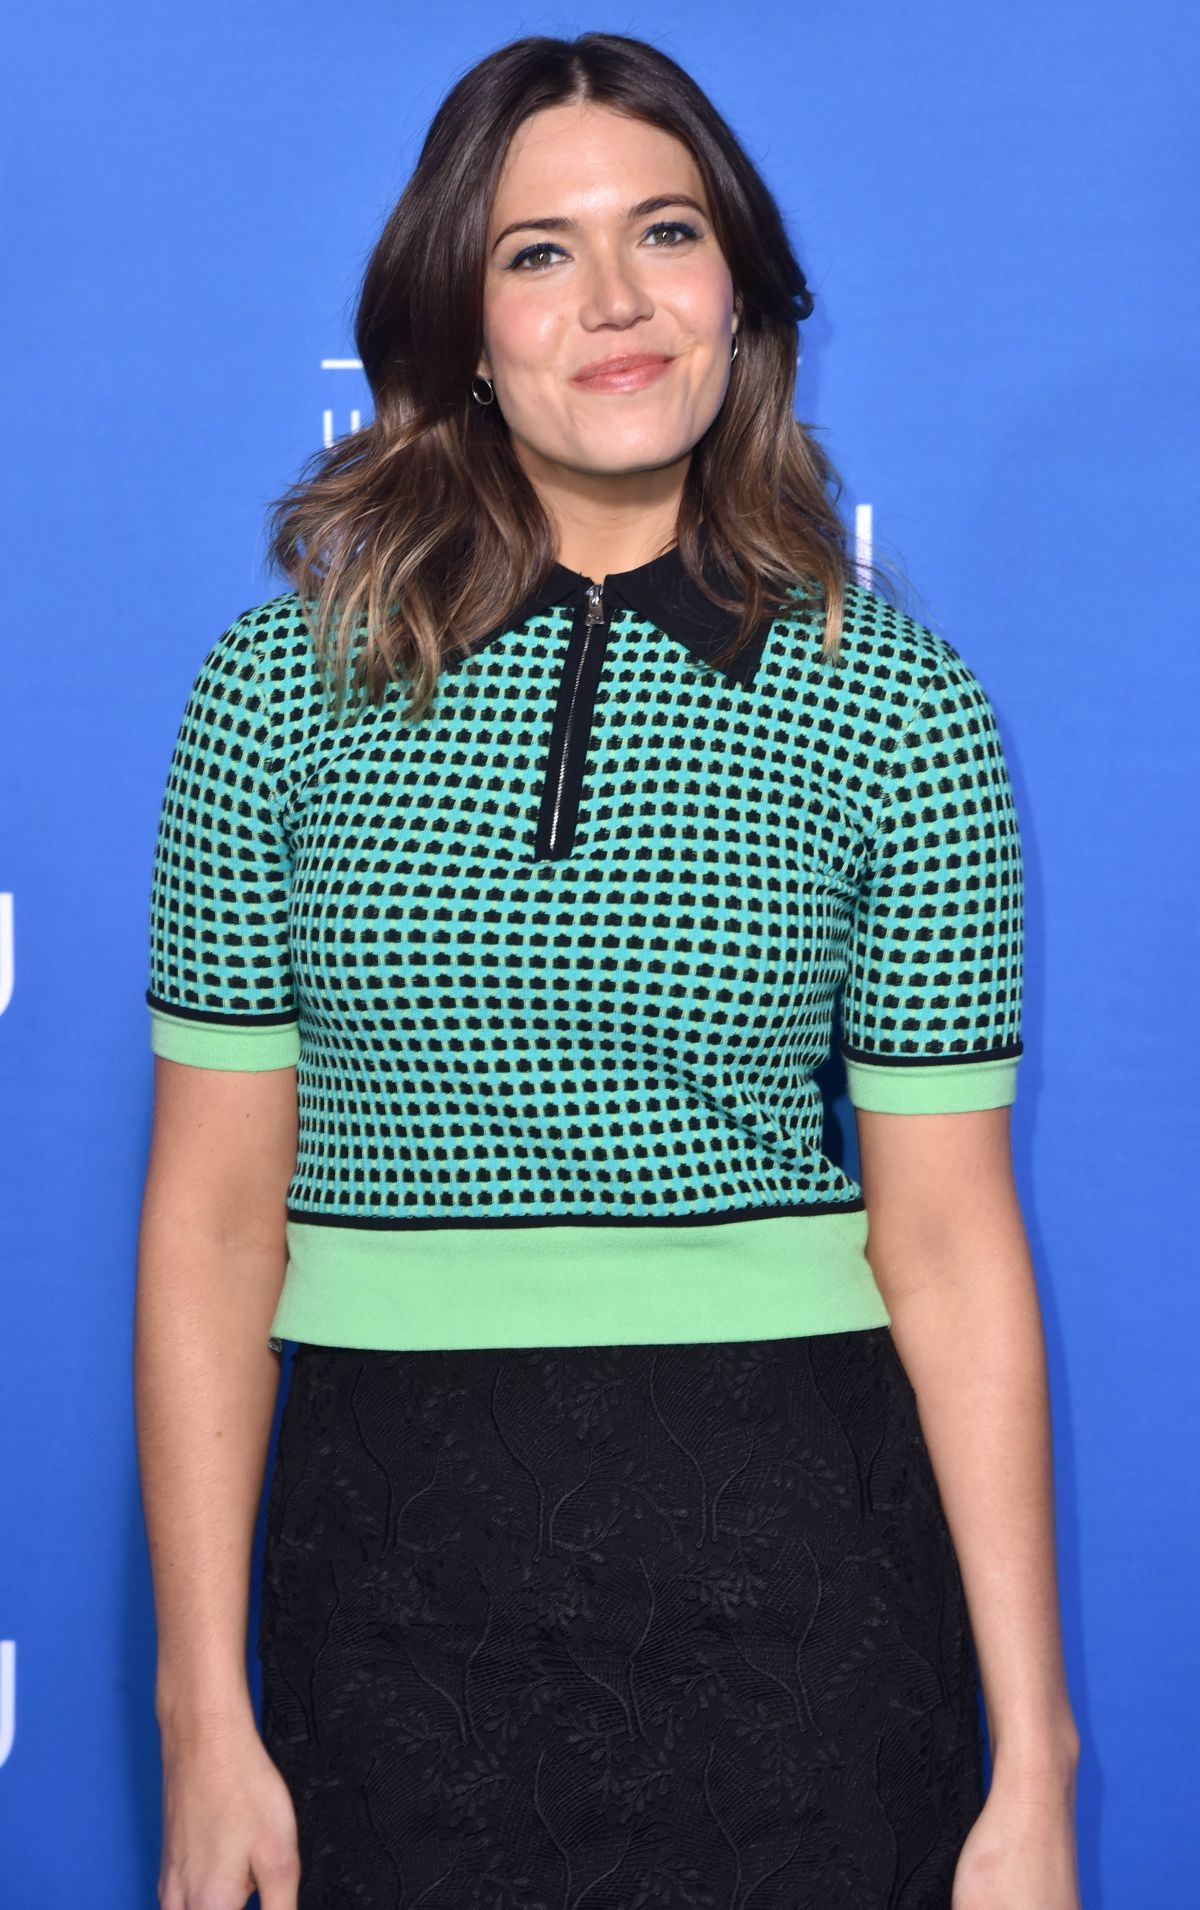 Mandy Moore At NBCUniversal Upfront in New York City   mandy-moore-at-nbcuniversal-upfront-in-new-york-city_7